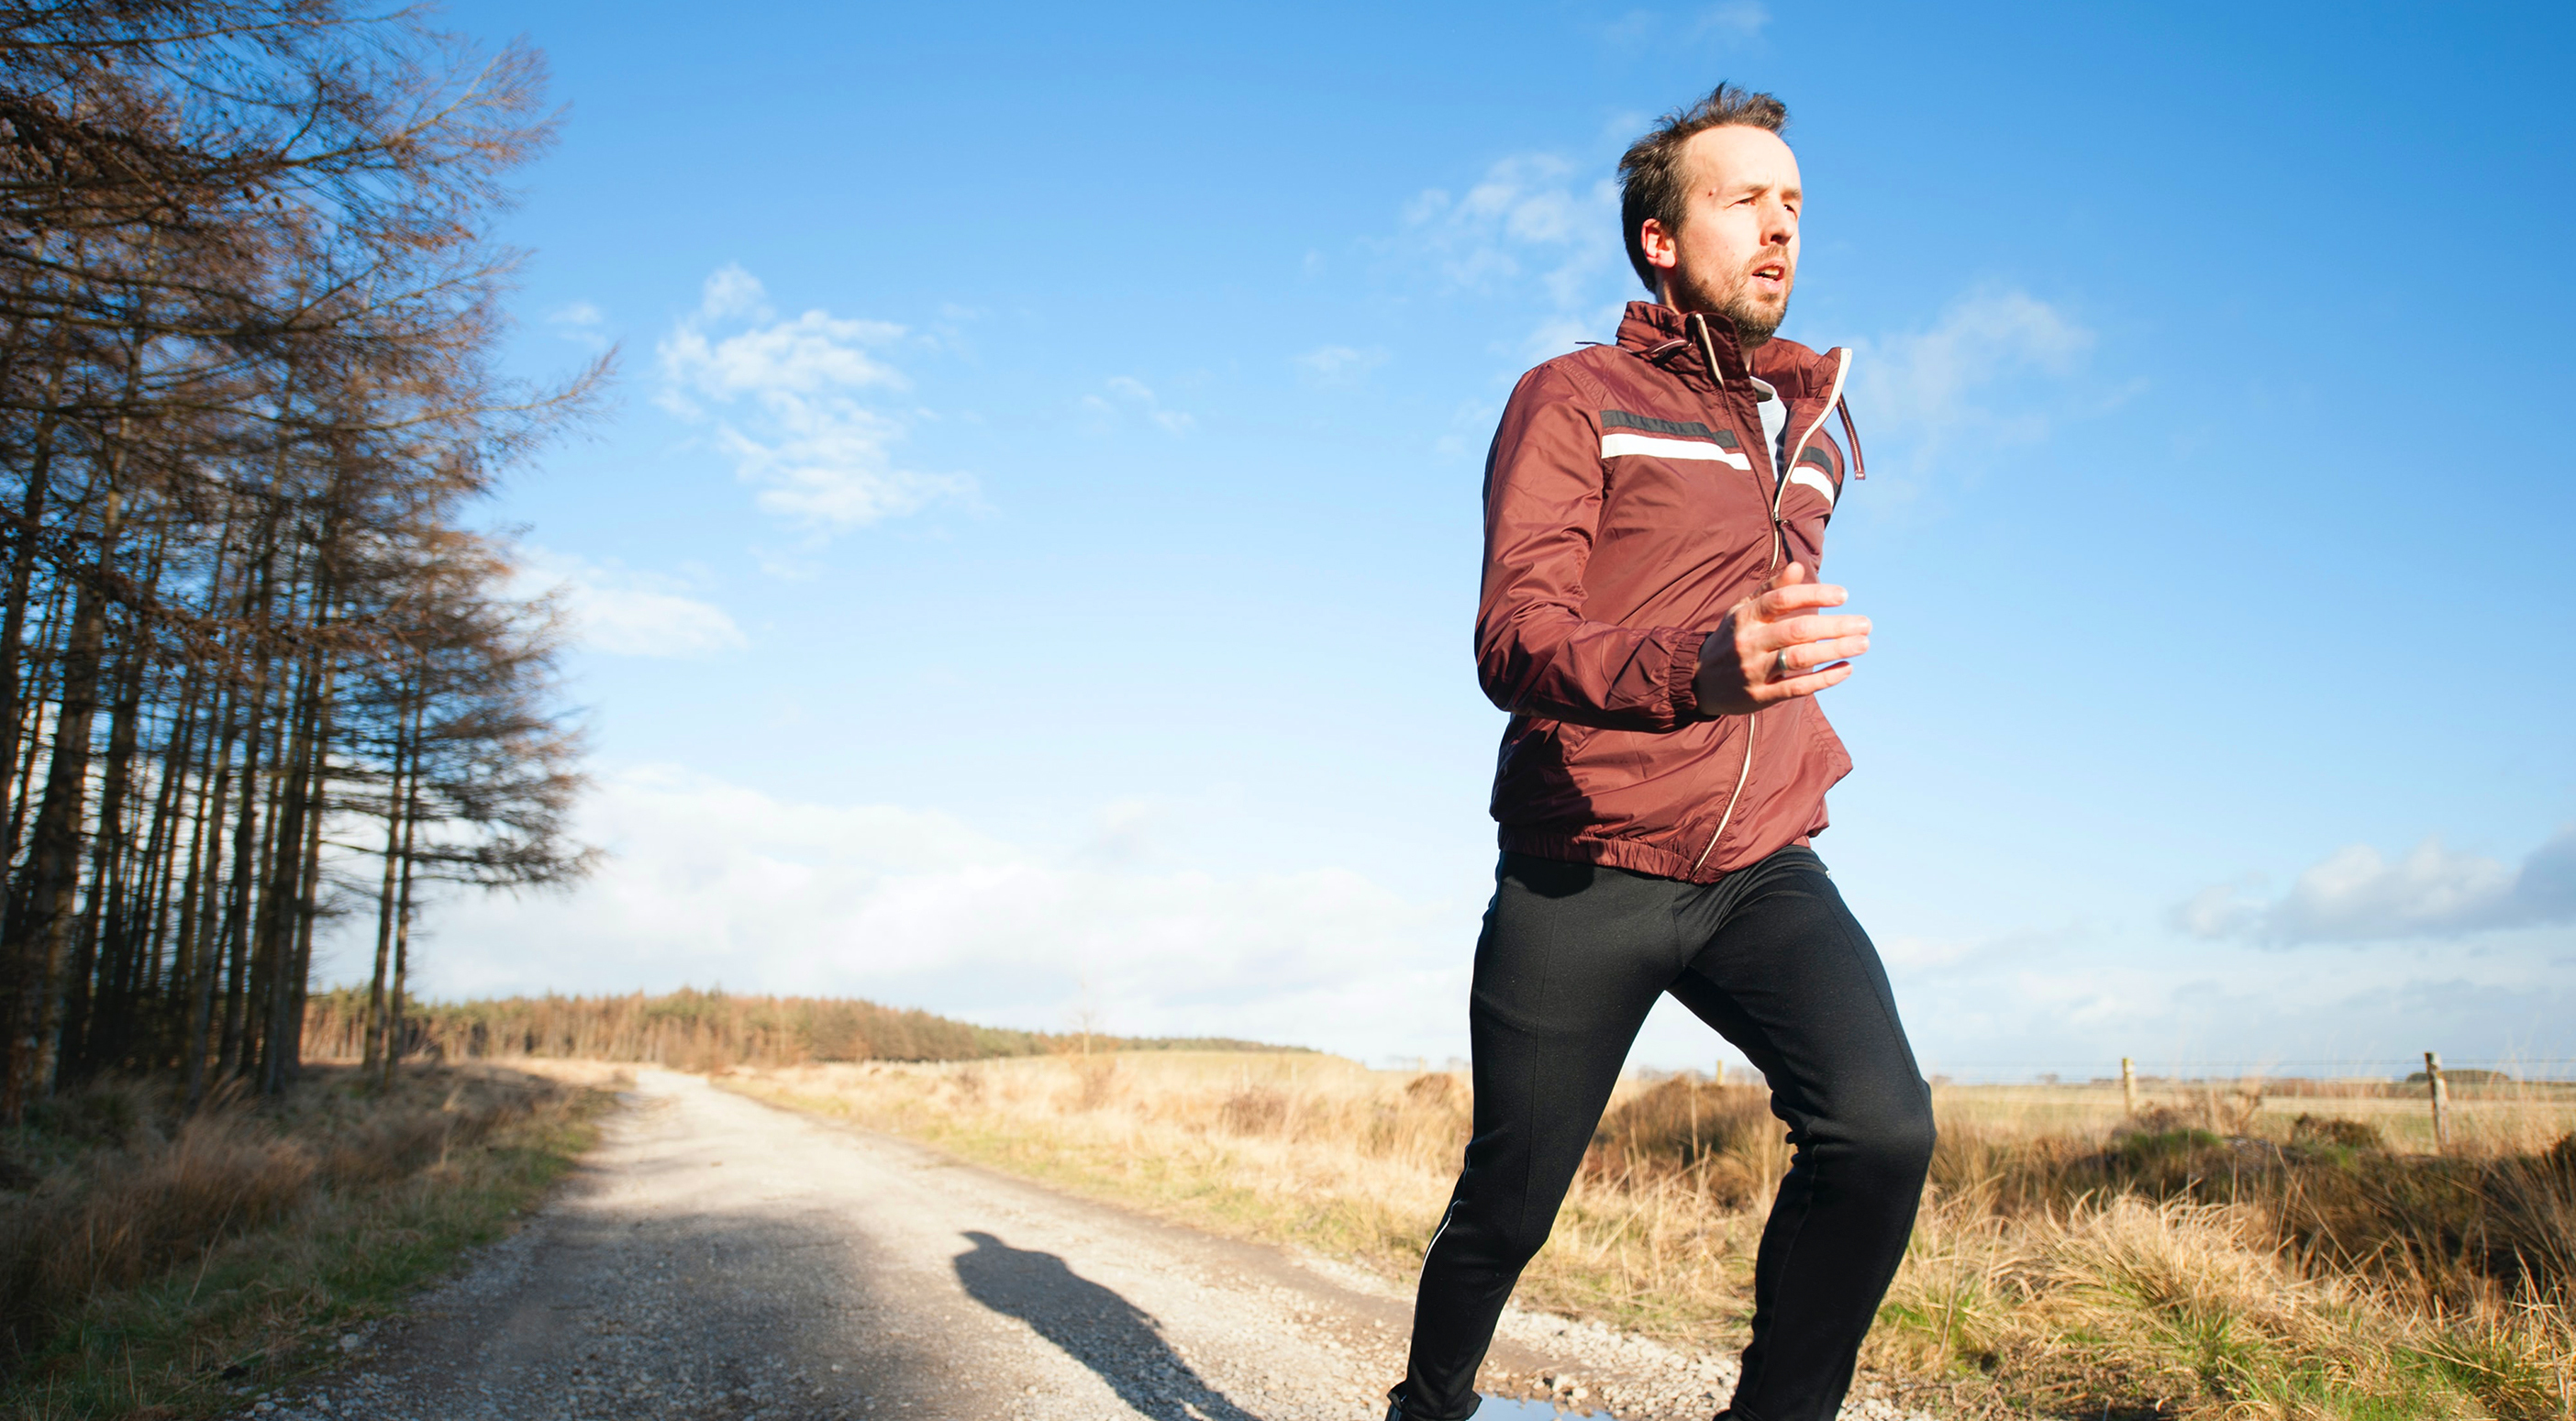 Man running outdoors, doing cardio exercise